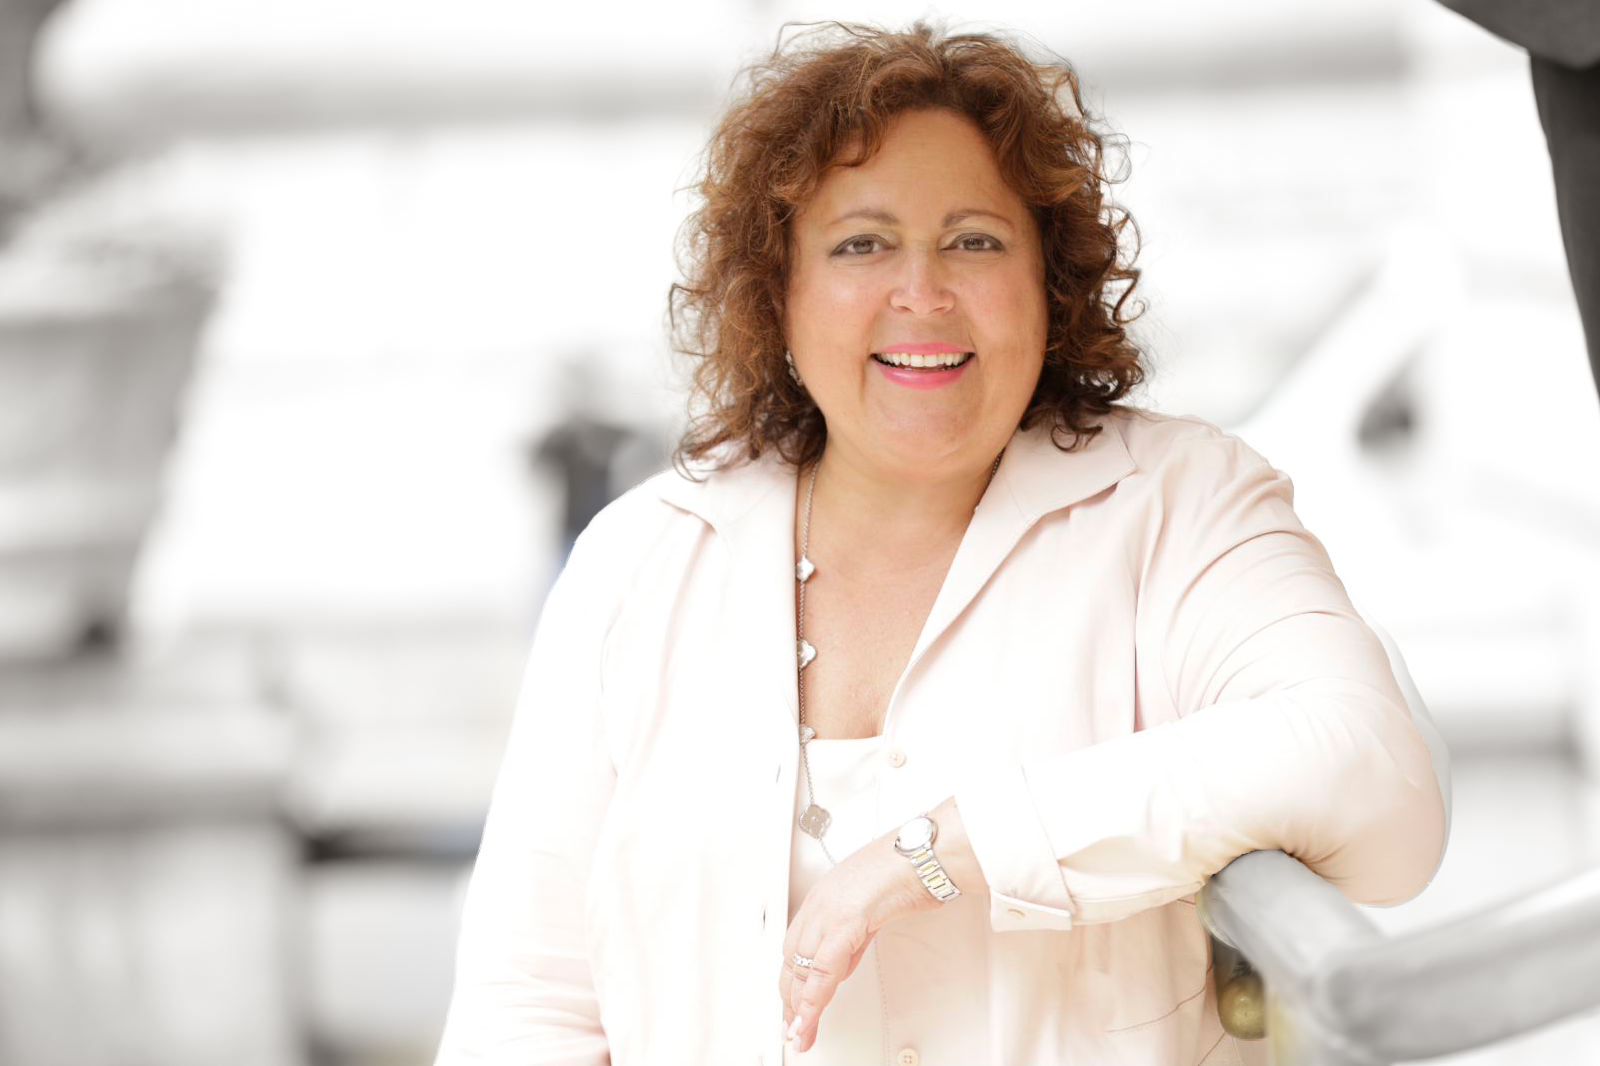 Insigniam Co-Founder Shideh S. Bina Elected Chair, Healthcare Businesswomen's Association's Global Board of Directors